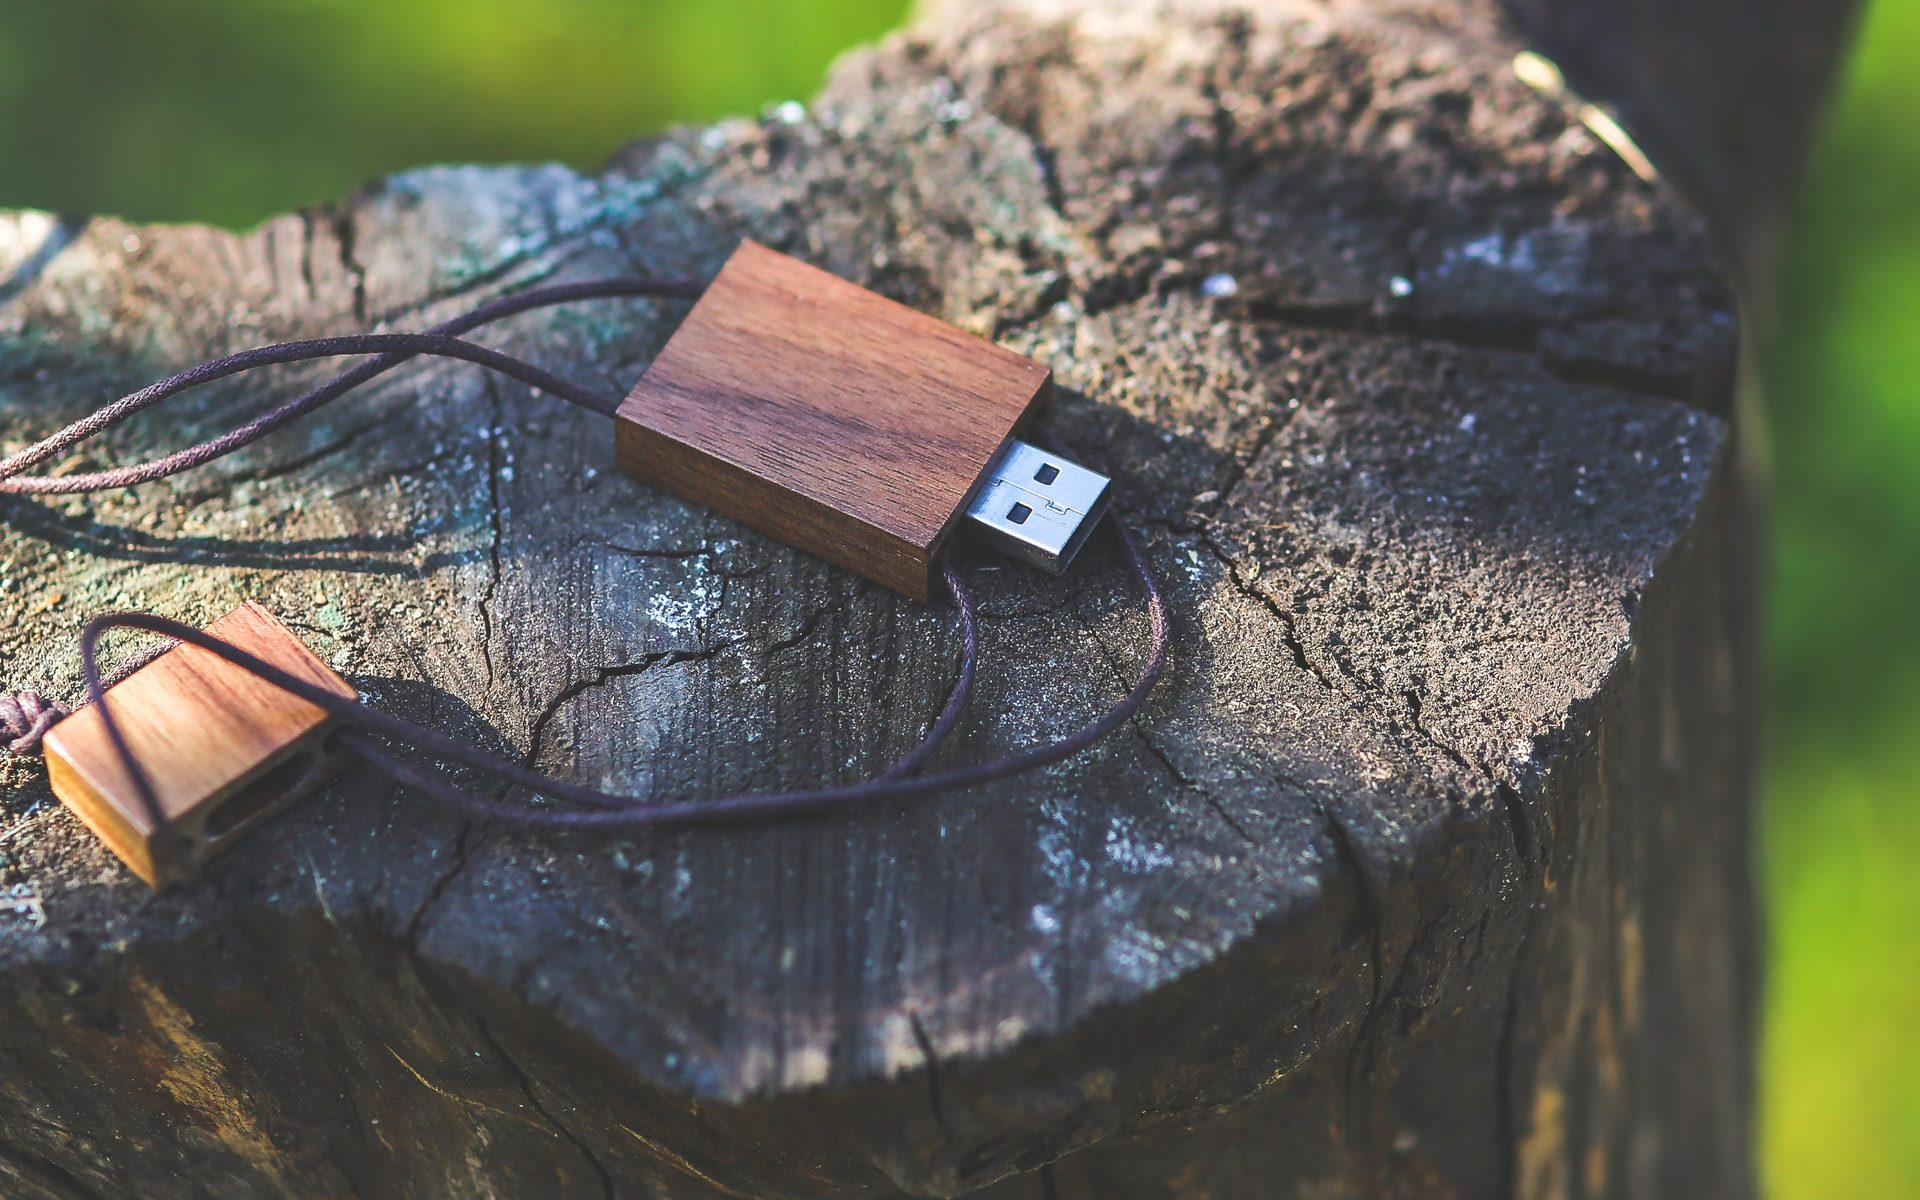 Wood-grain USB thumb drive laying on tree stump